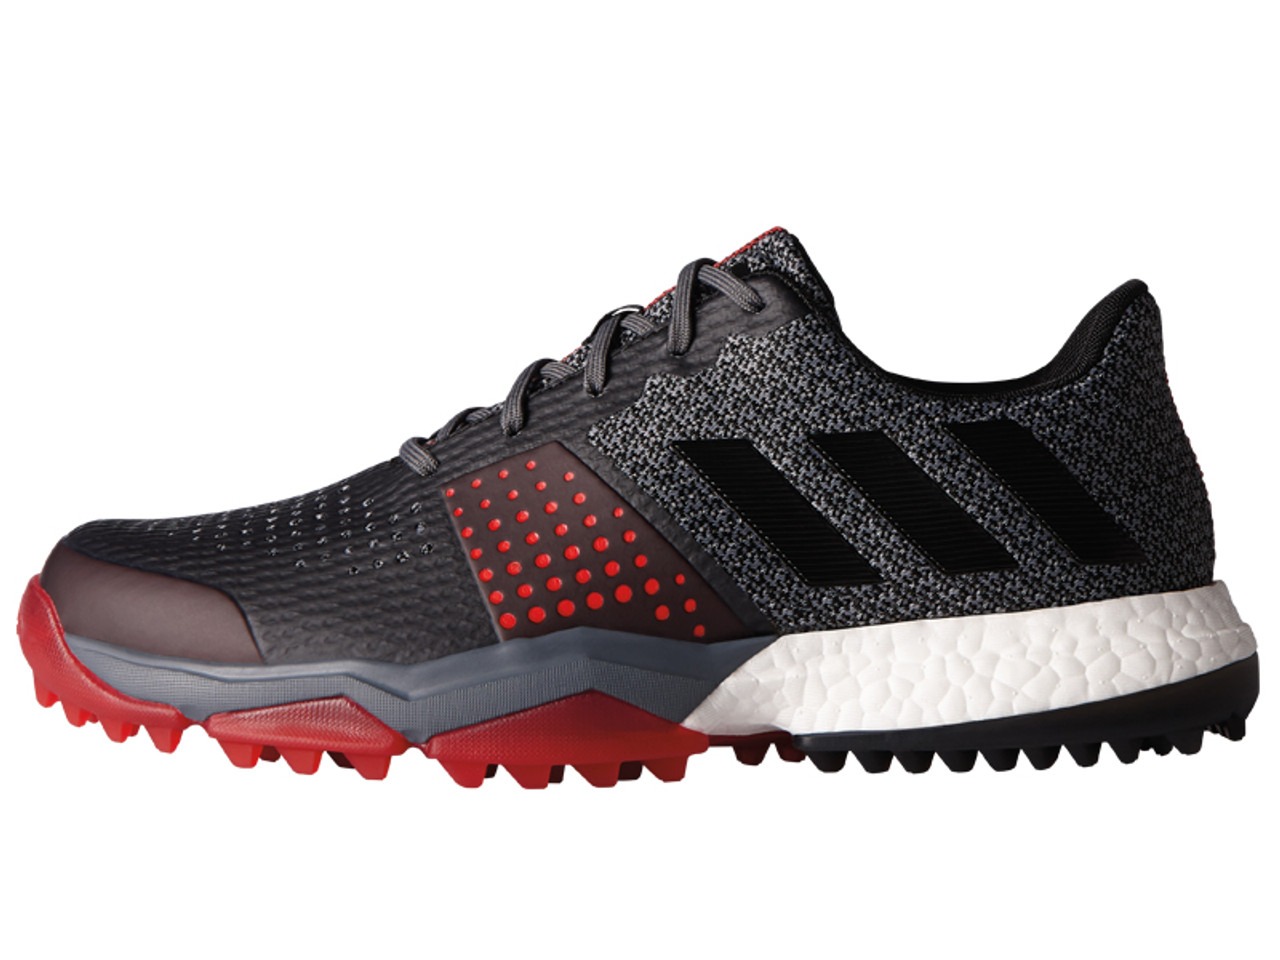 6e9219503b98 Adidas Adipower S Boost 3 Golf Shoes - Onix C Black Scarlet - Mens ...